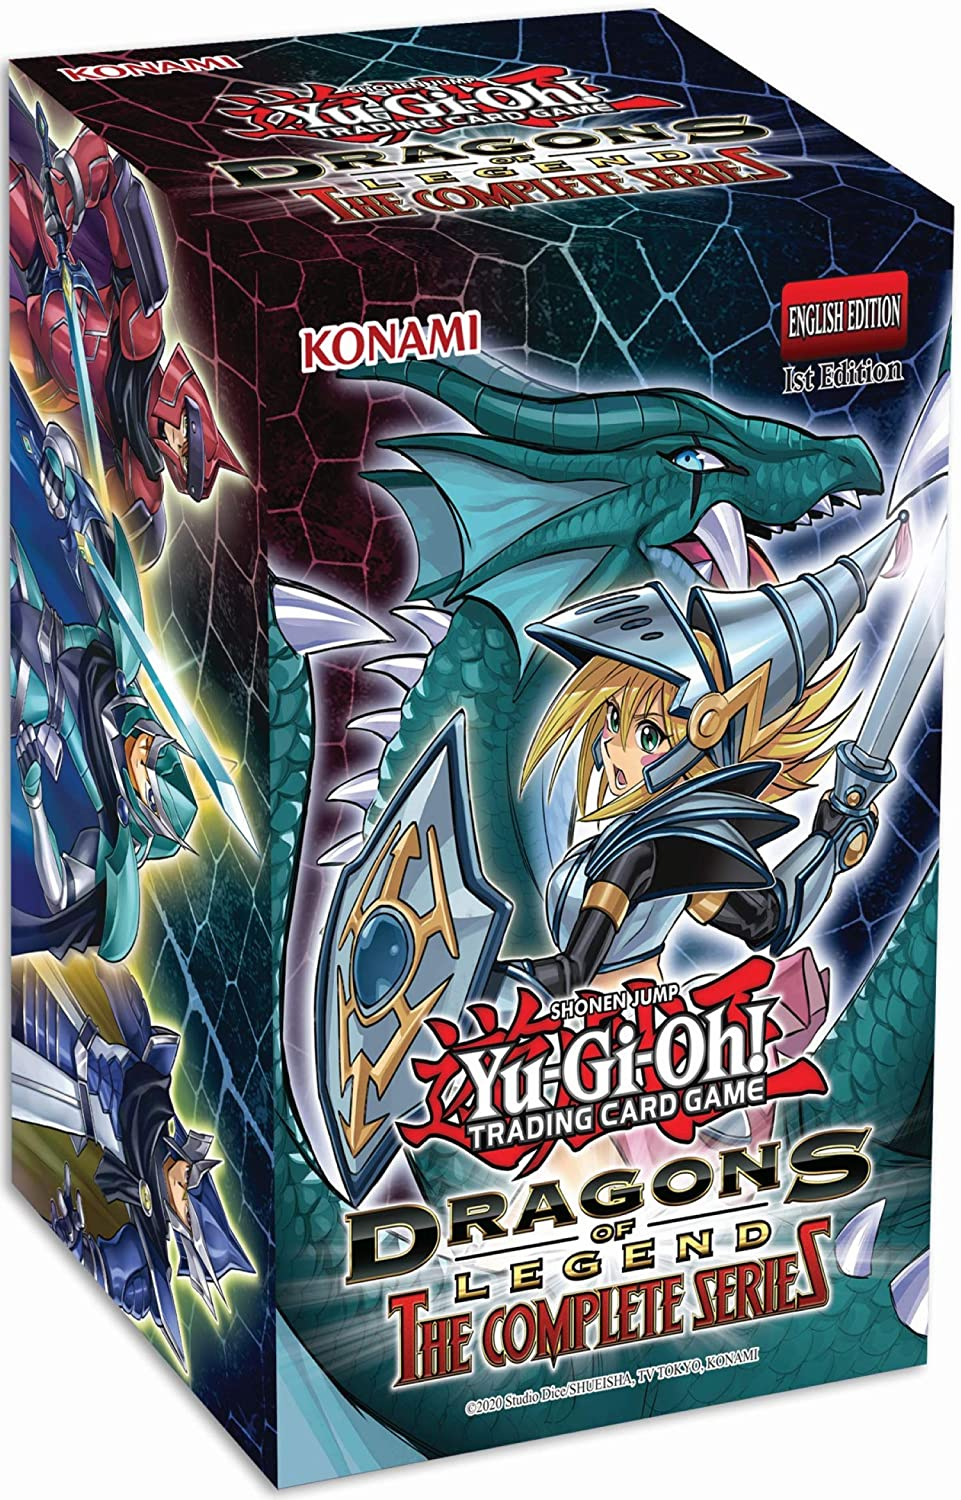 yugioh trading cards dragon of legend complete series